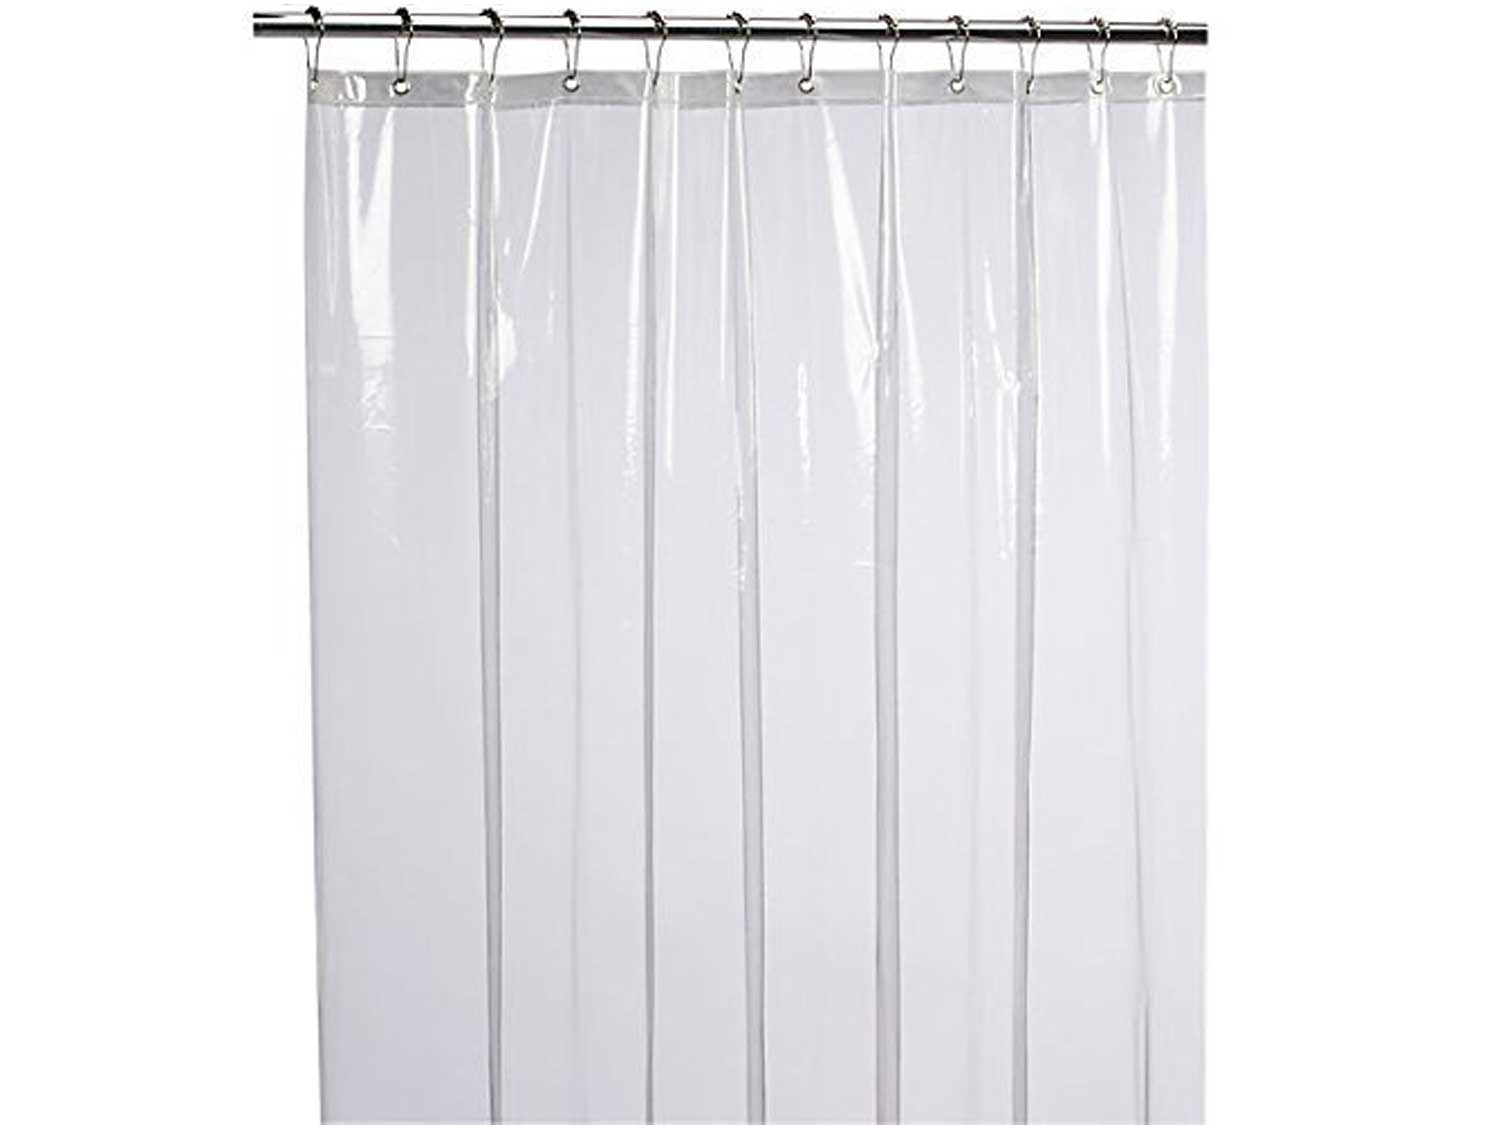 LiBa Mildew Resistant Antimicrobial PEVA 8G Shower Curtain Liner